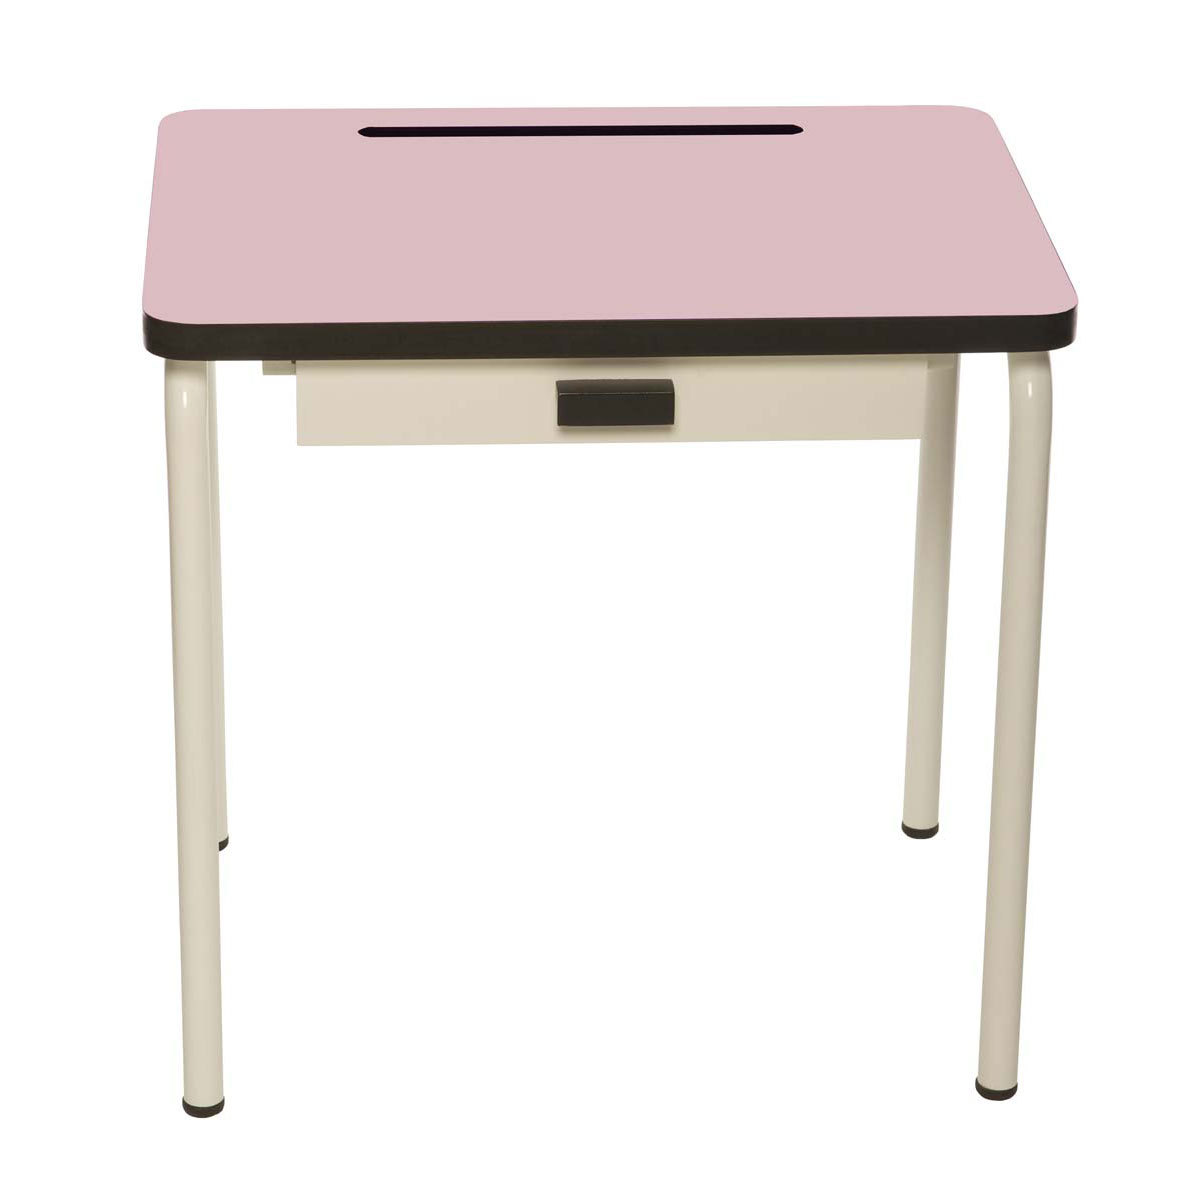 Table & Chaise Bureau Régine - Rose Poudré Bureau Régine - Rose Poudré